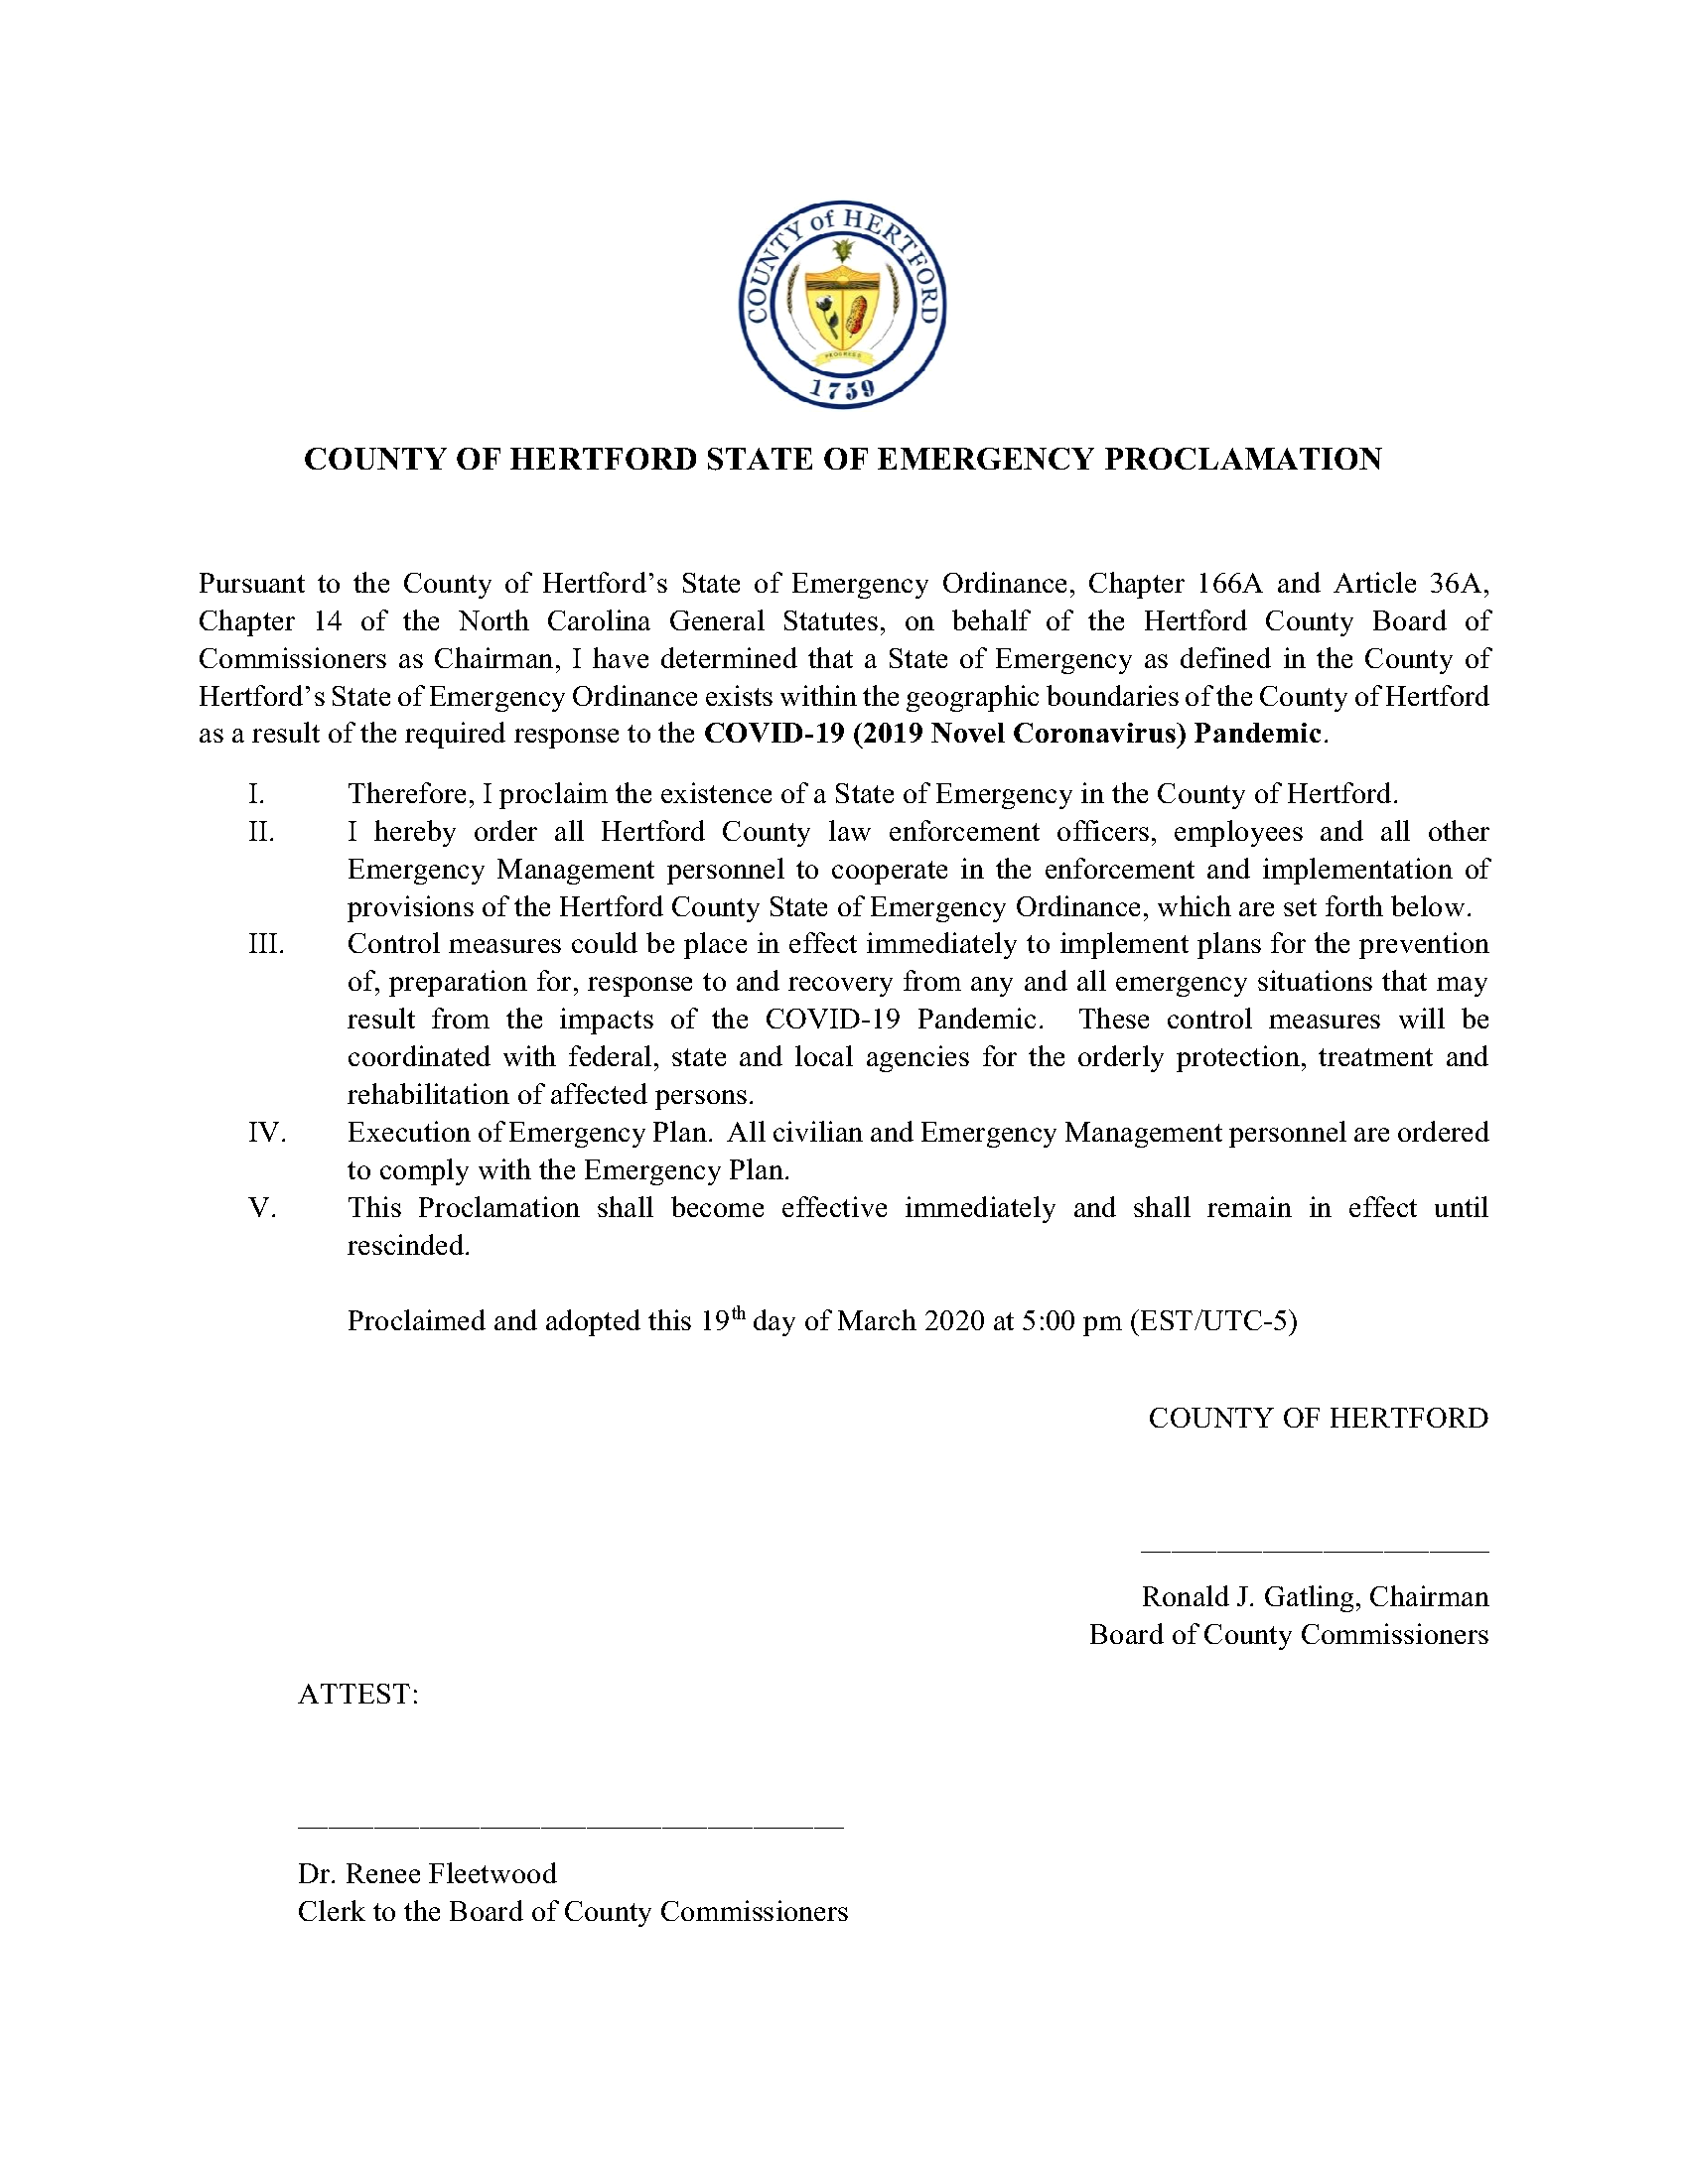 COVID-19 State of Emergency Proclamation 031920